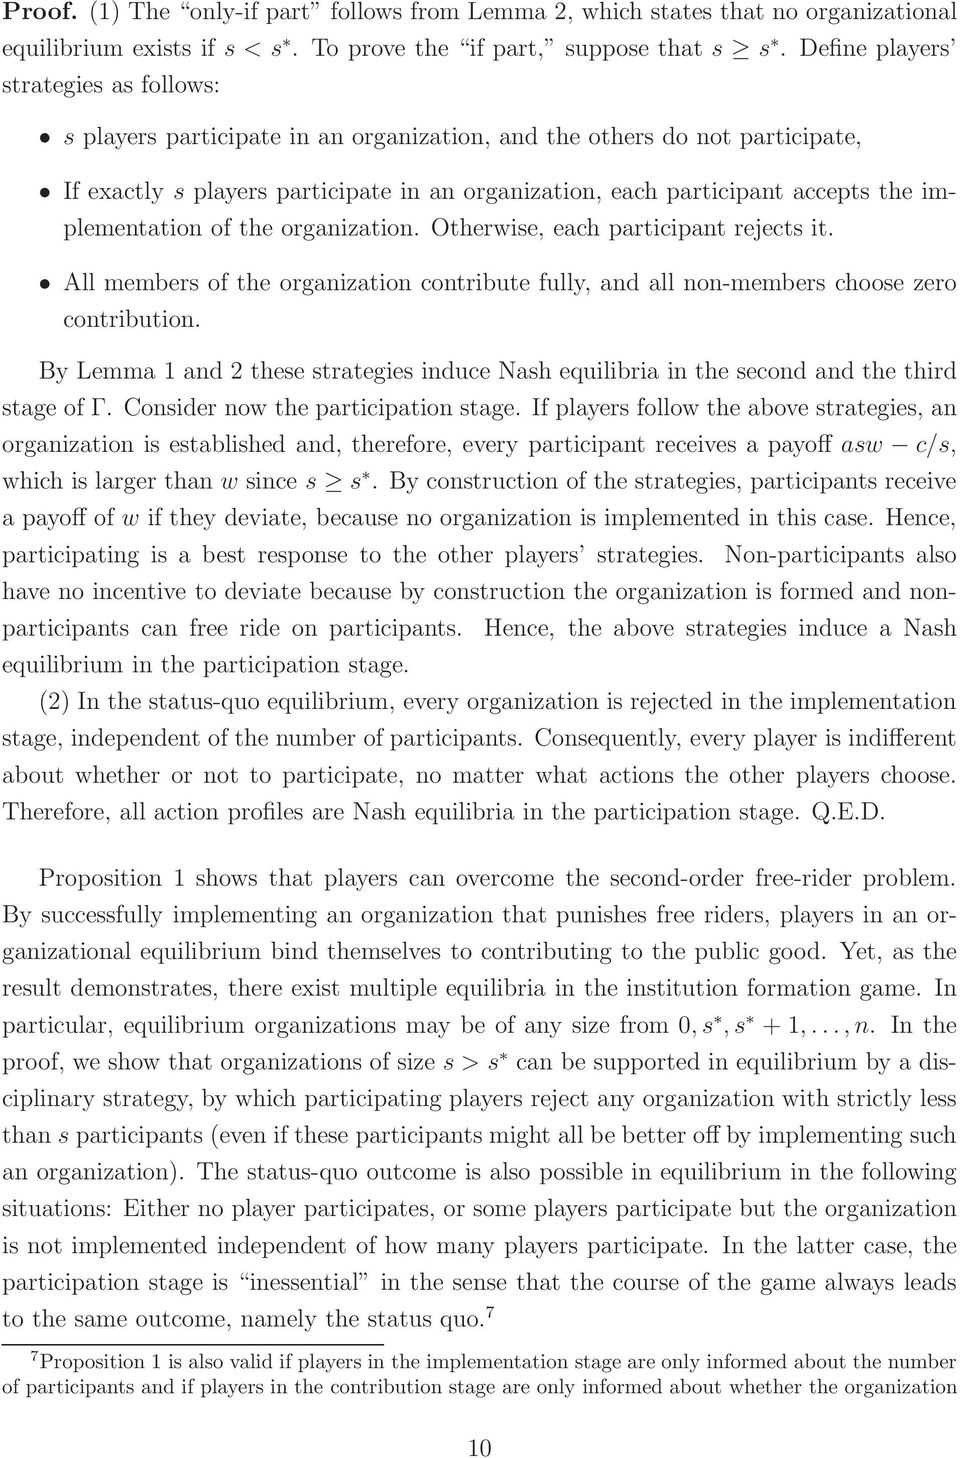 implementation of the organization. Otherwise, each participant rejects it. All members of the organization contribute fully, and all non-members choose zero contribution.